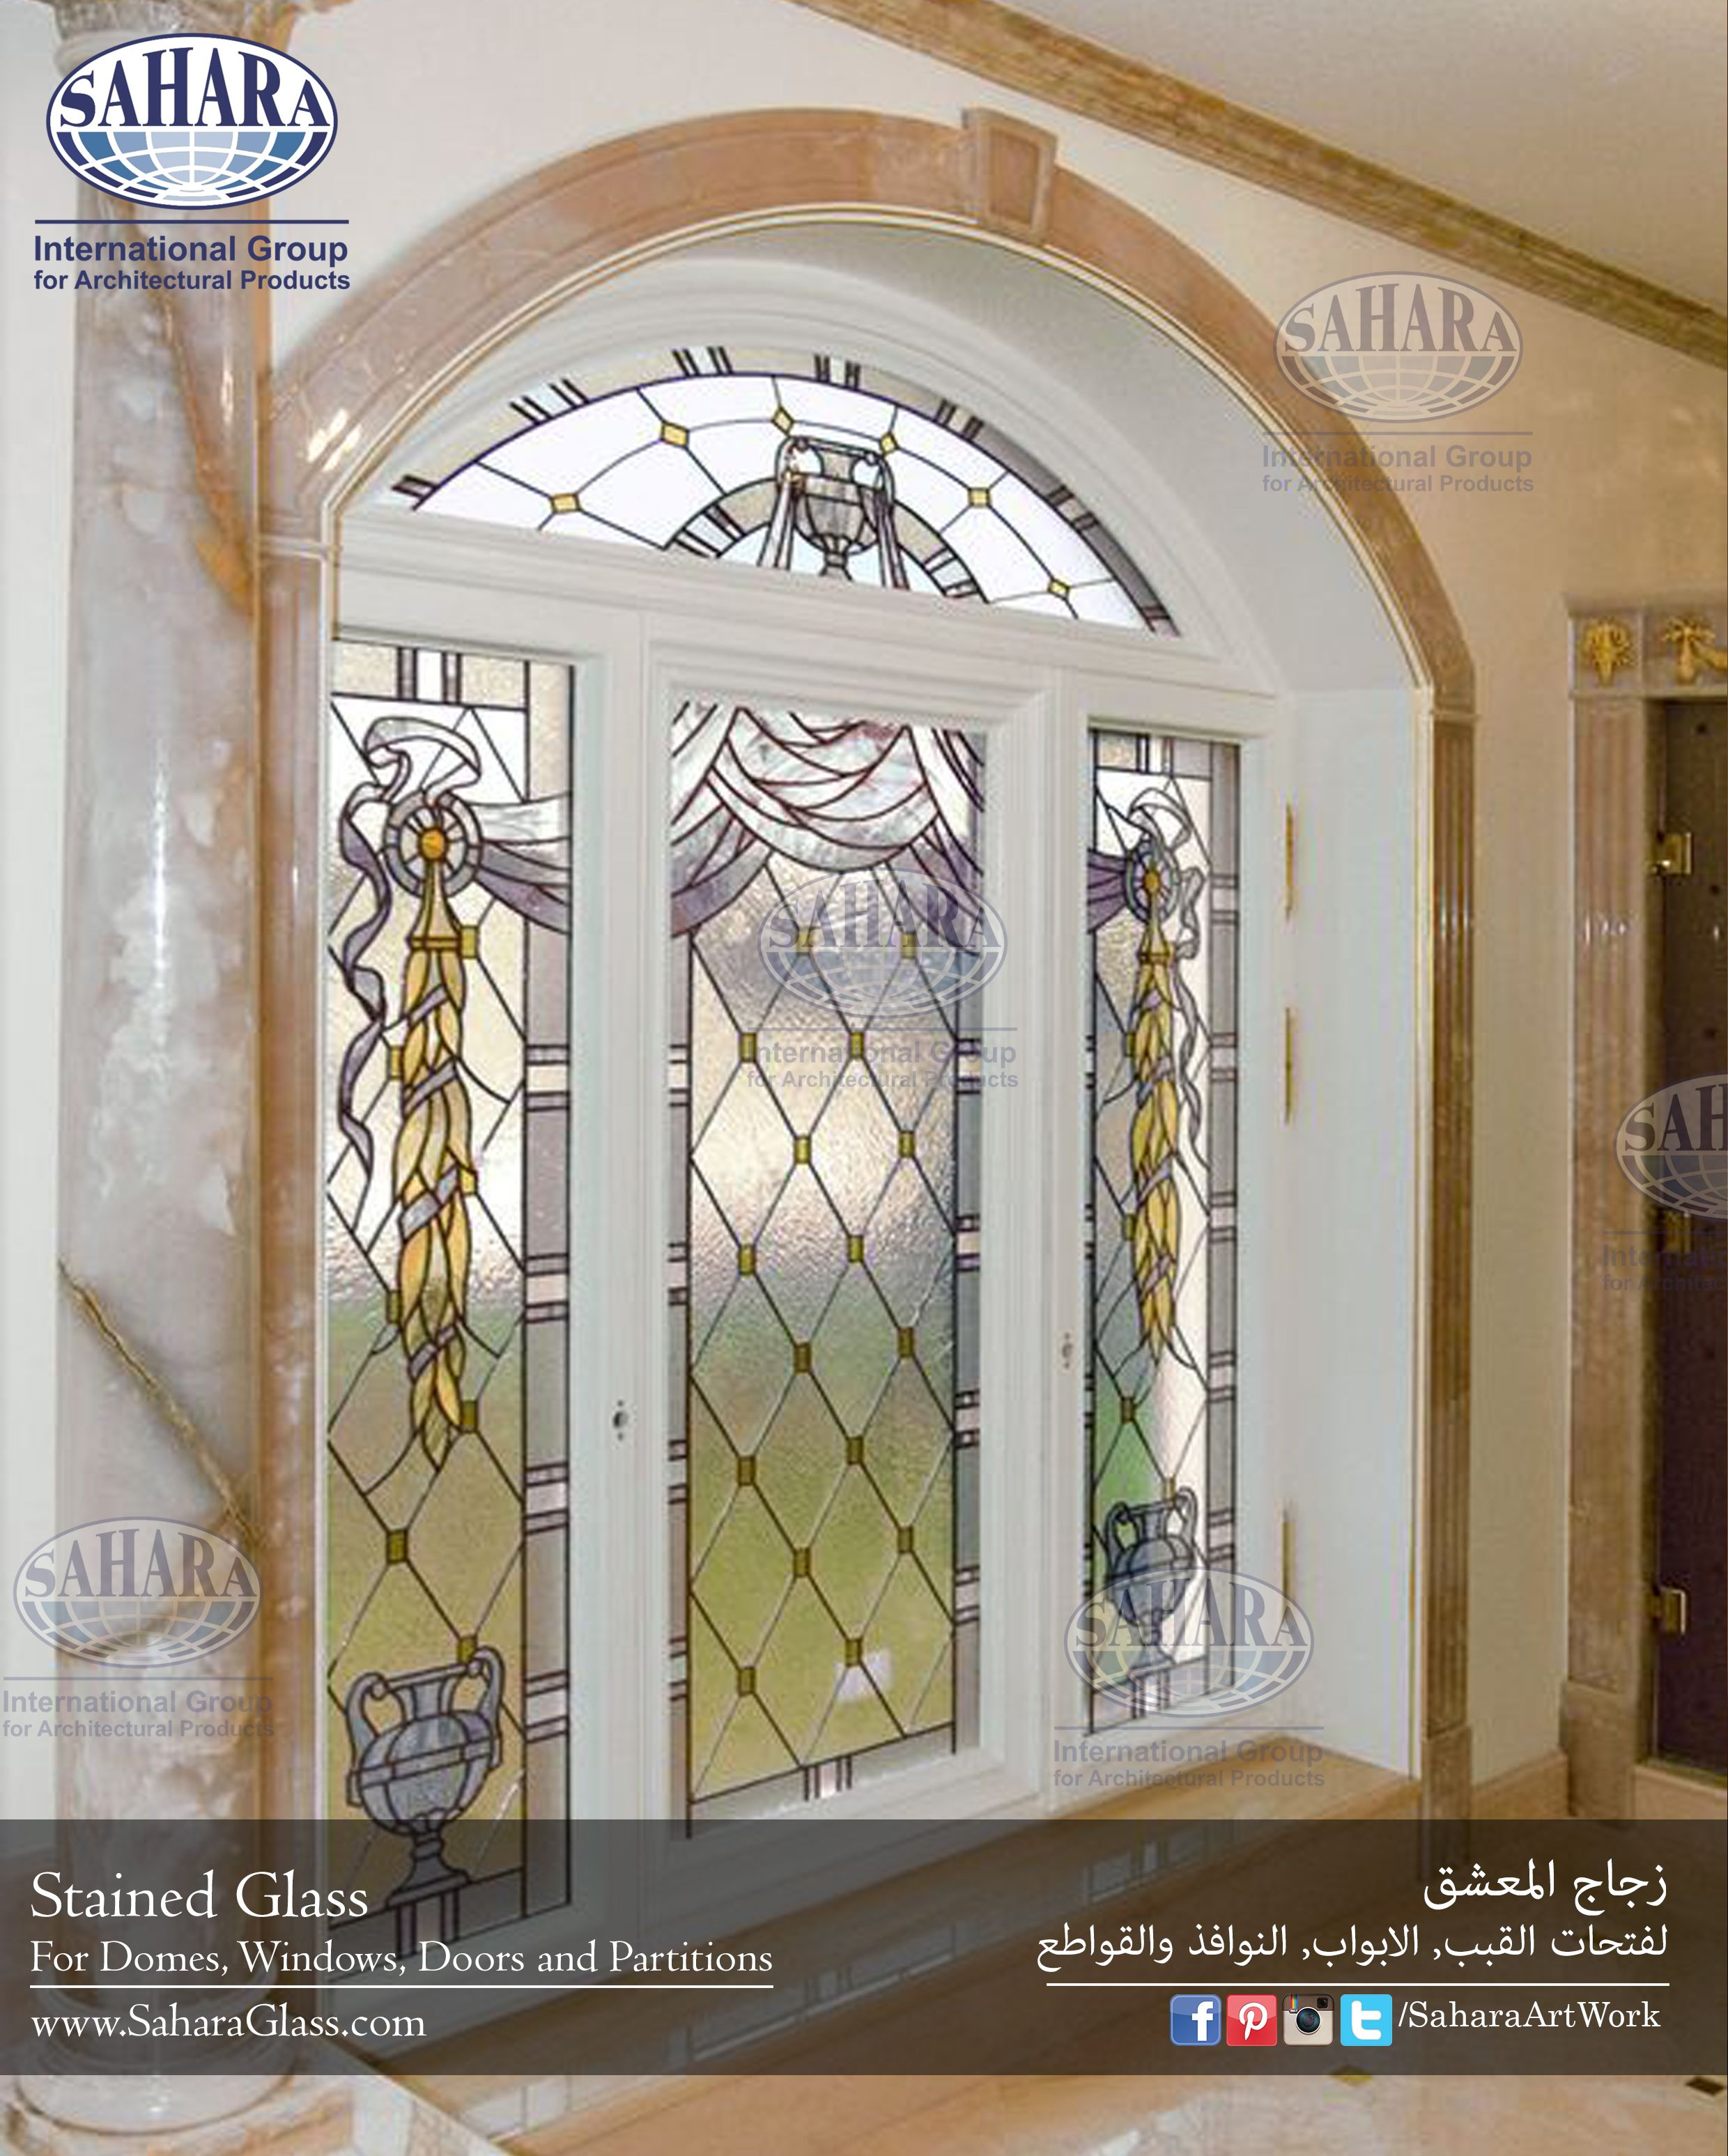 A Beautifully Designed And Craftve Stained Glass Piece With